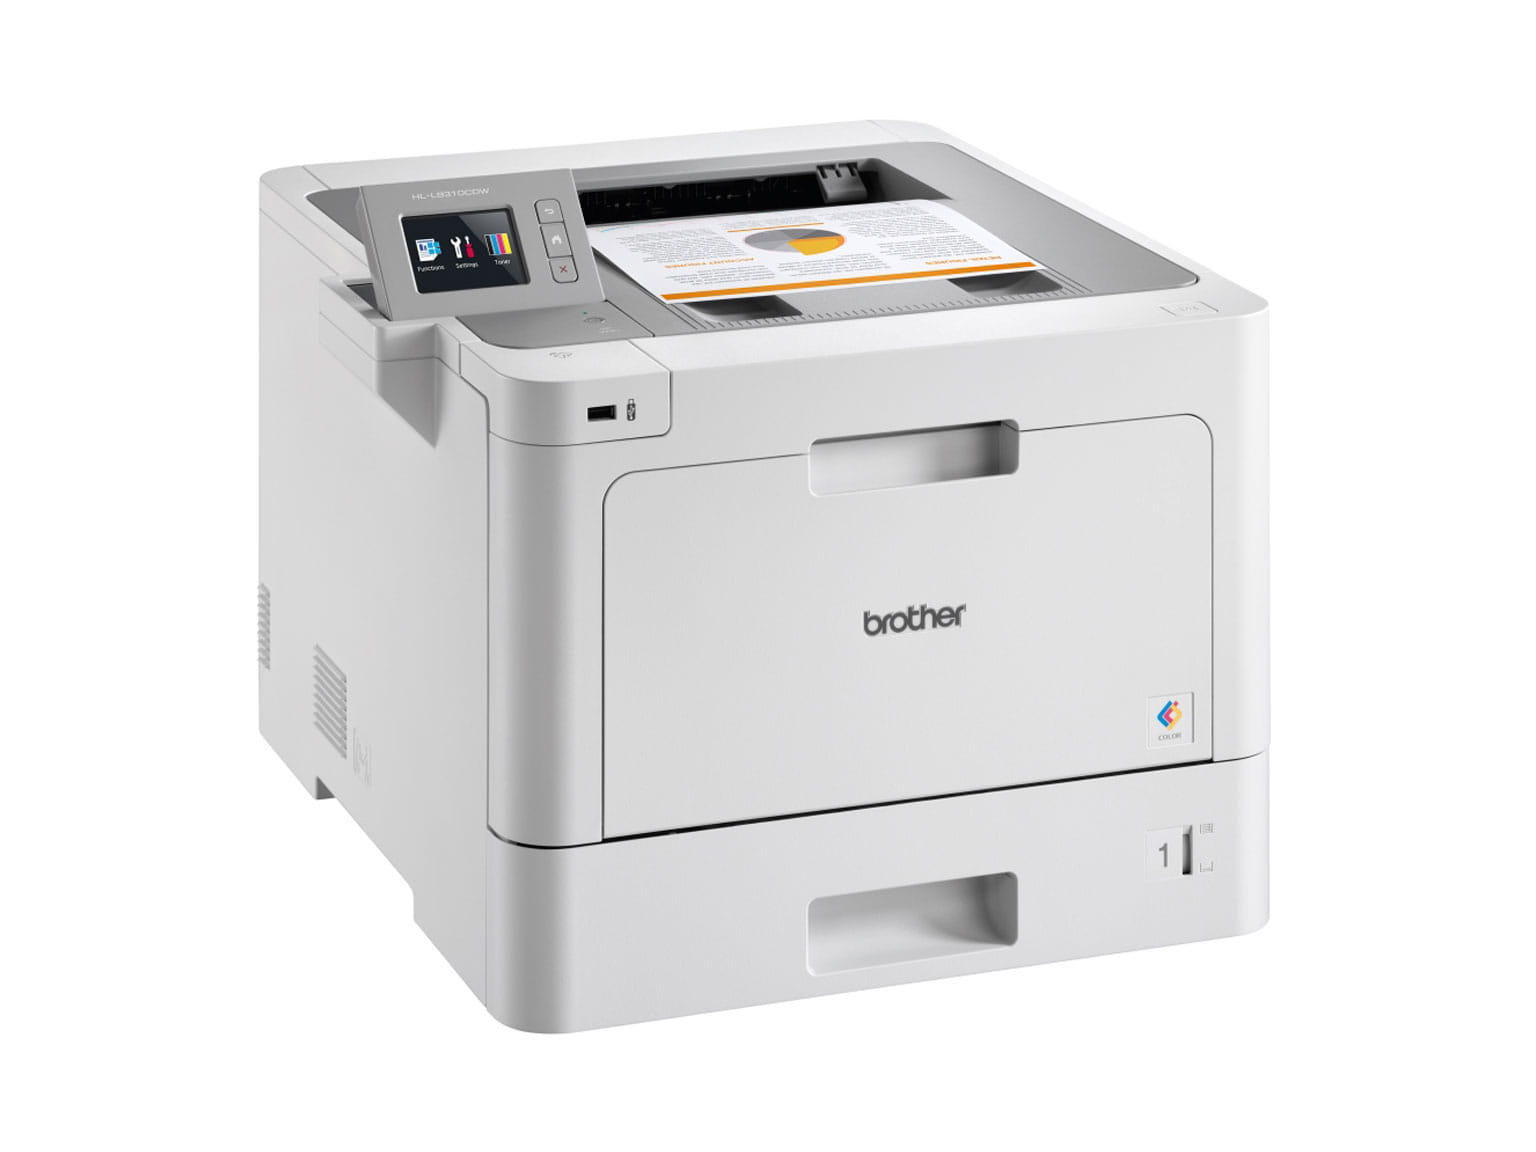 Brother colour laser printer 3/4 view